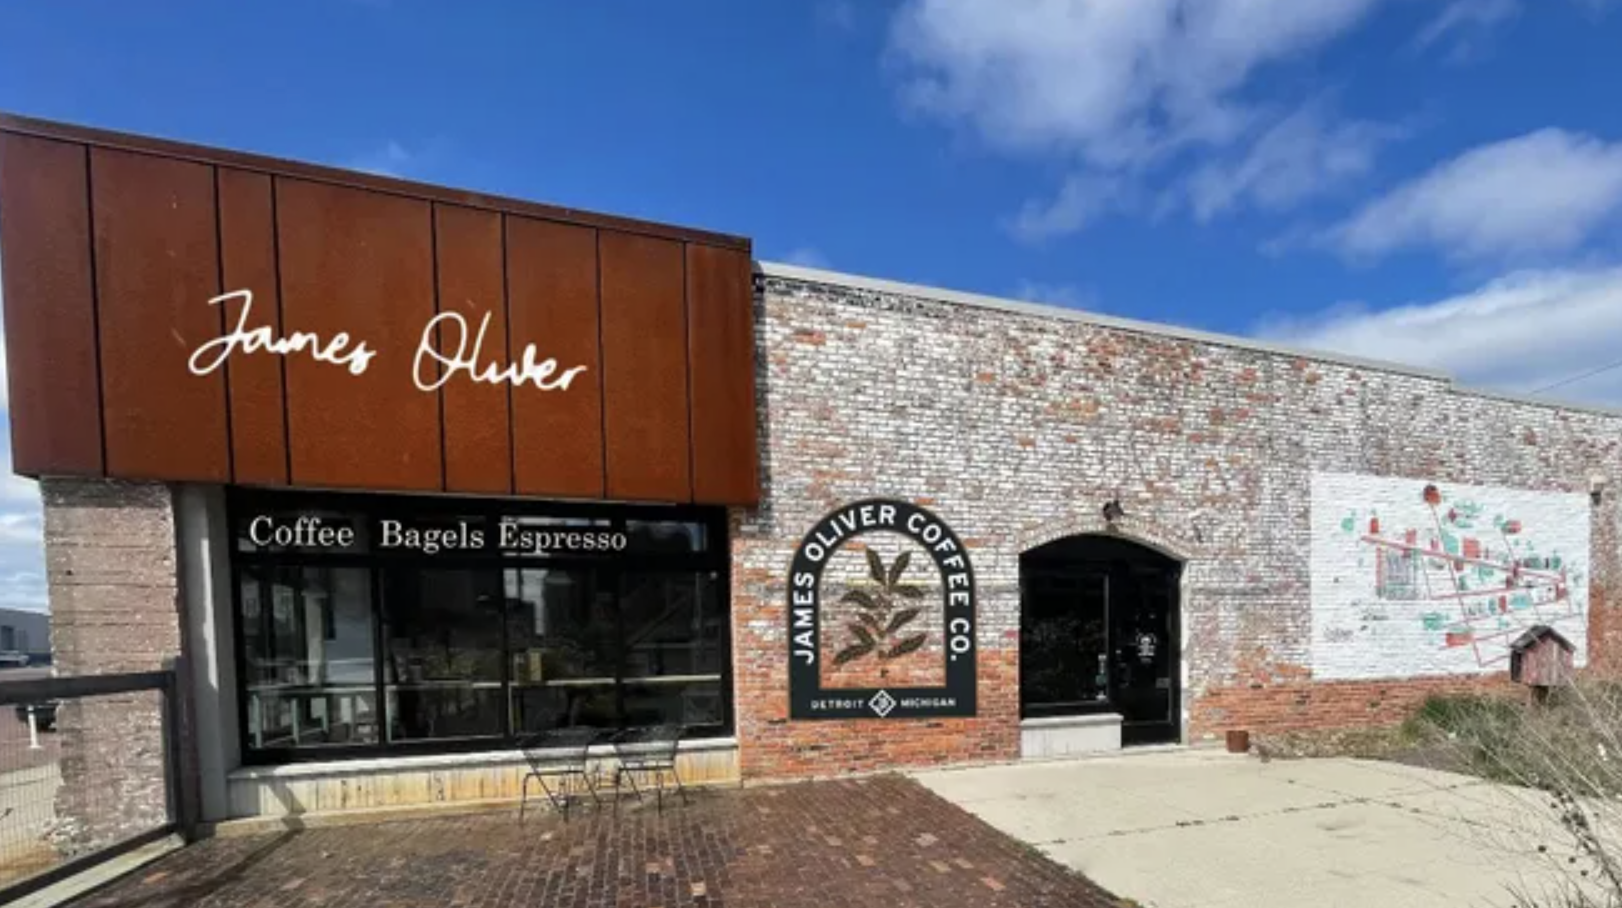 An artist's rendering of a brown commercial building in a storefront. There's a large glass window, and a sign atop a brown awning that reads James Oliver in cursive script.